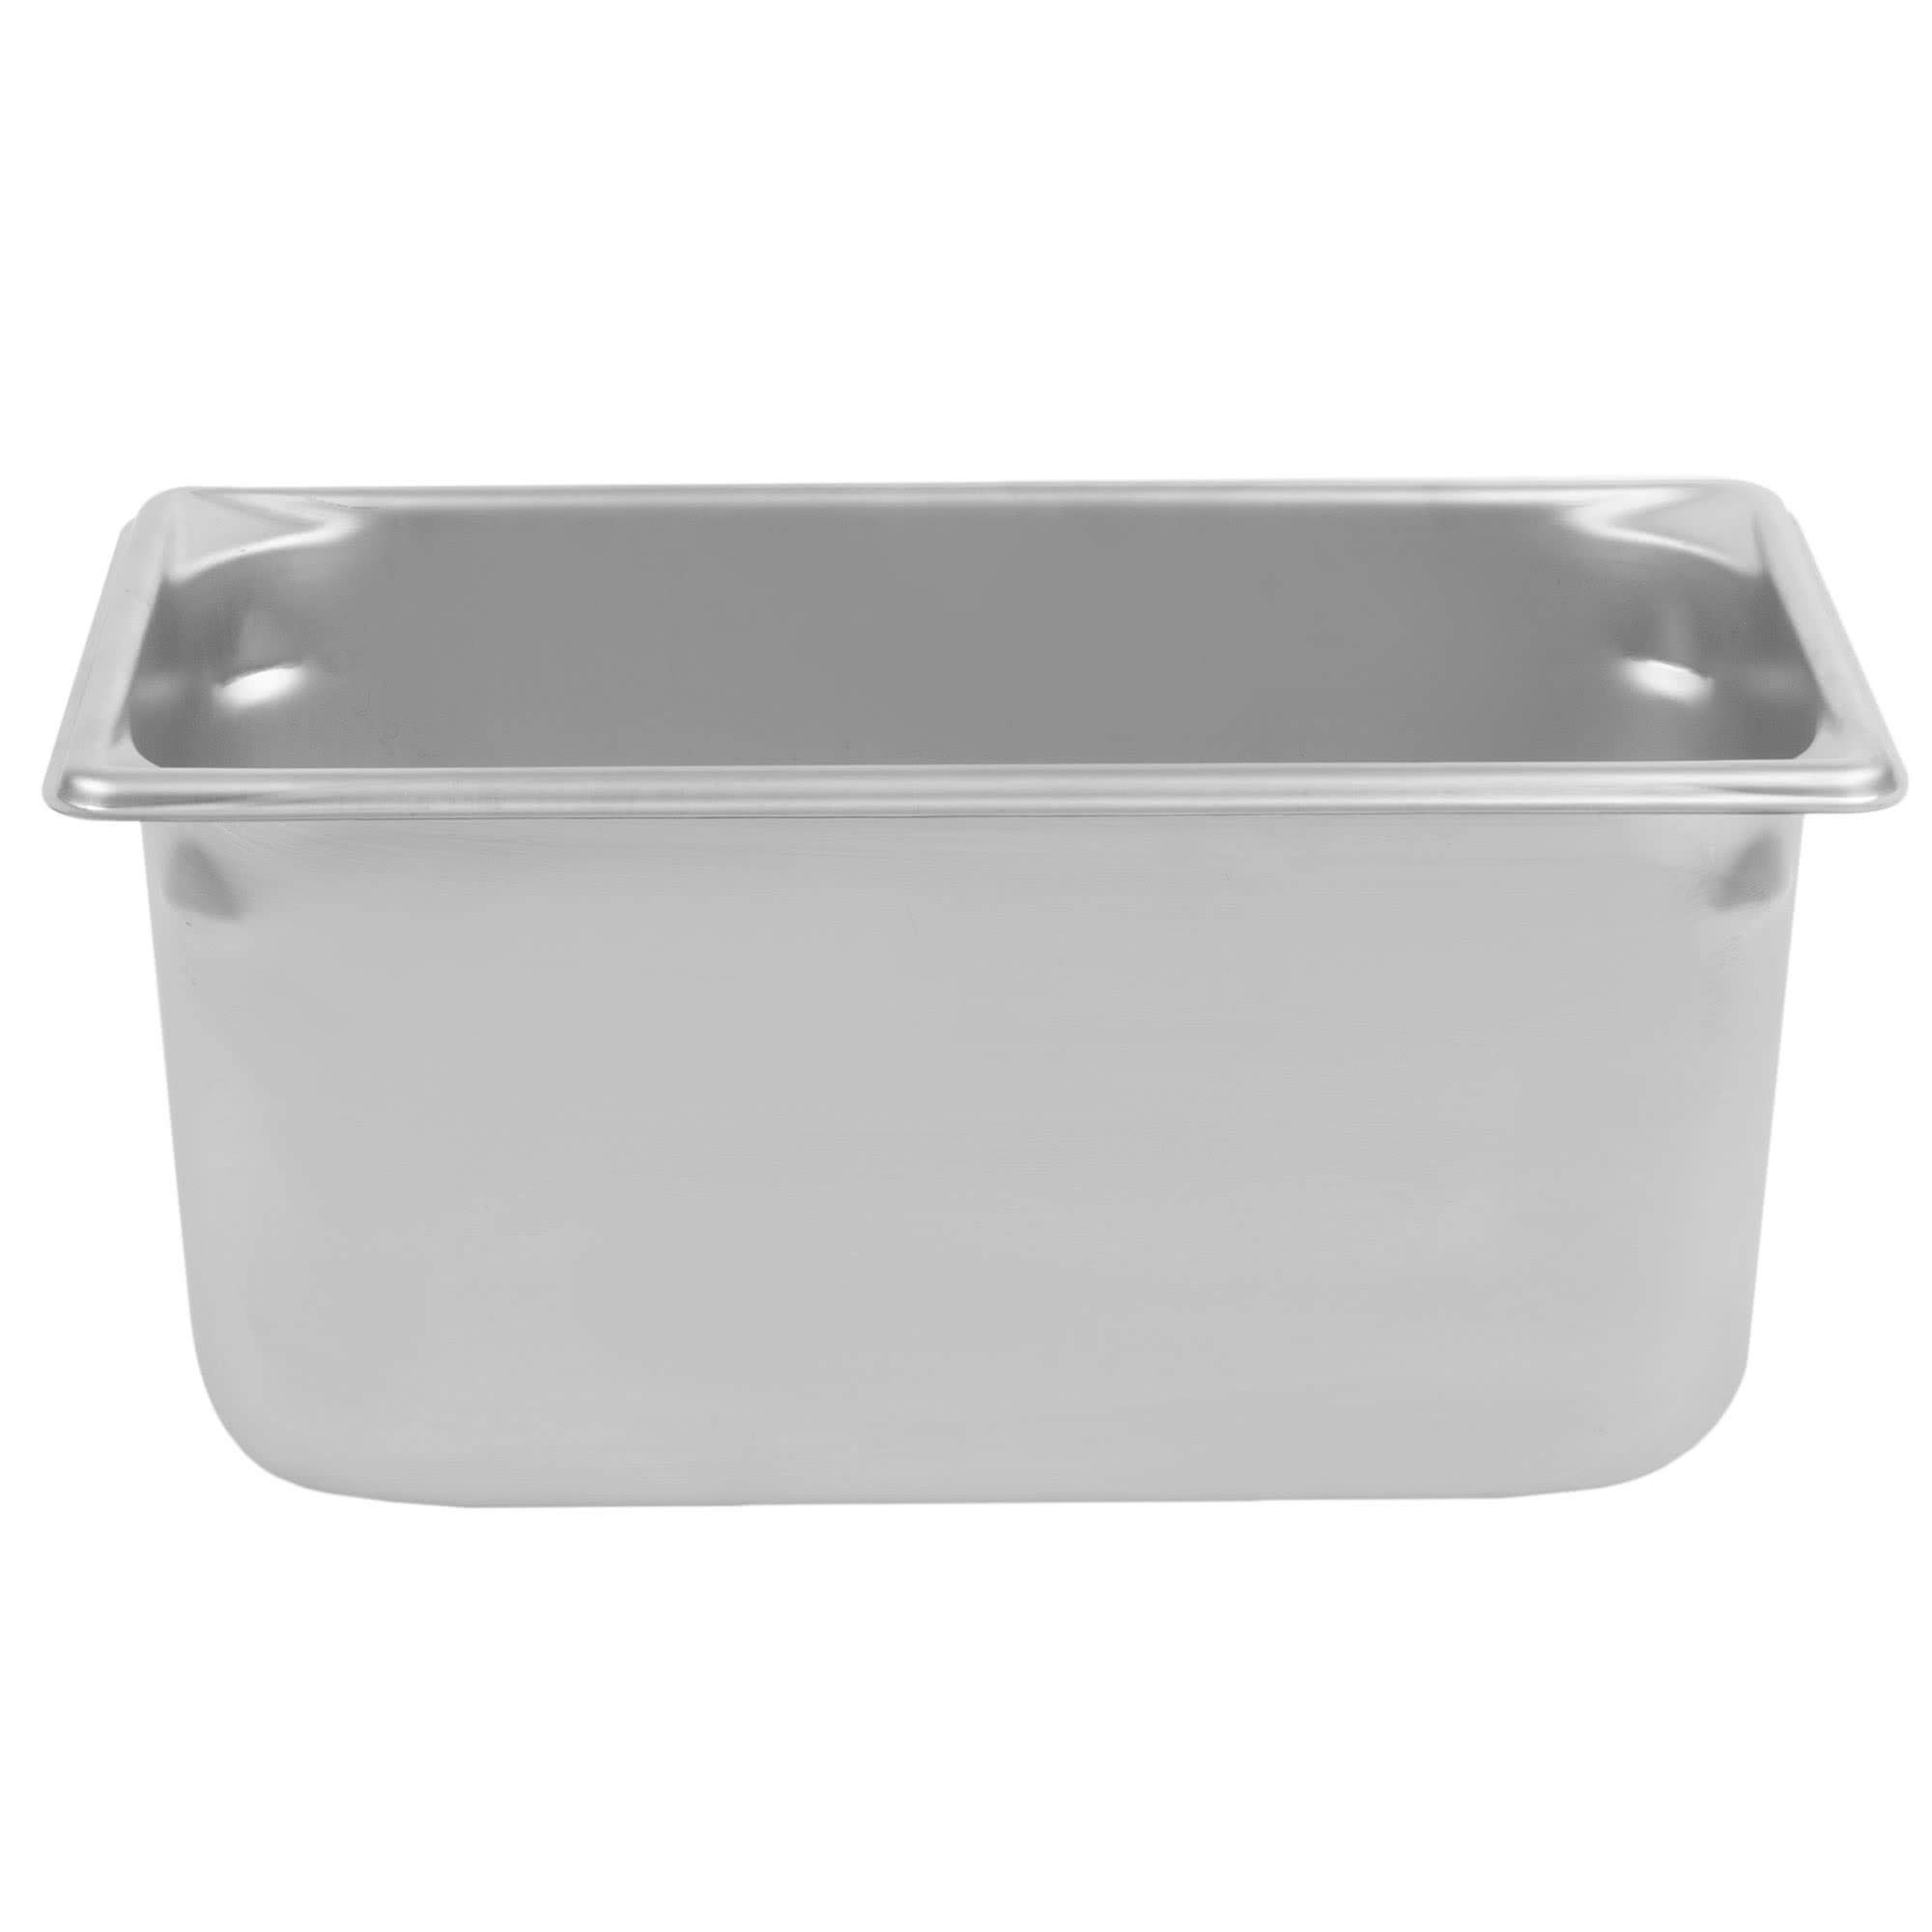 TableTop King 30362 Super Pan V 1/3 Size Anti-Jam Stainless Steel Steam Table/Hotel Pan - 6'' Deep by TableTop King